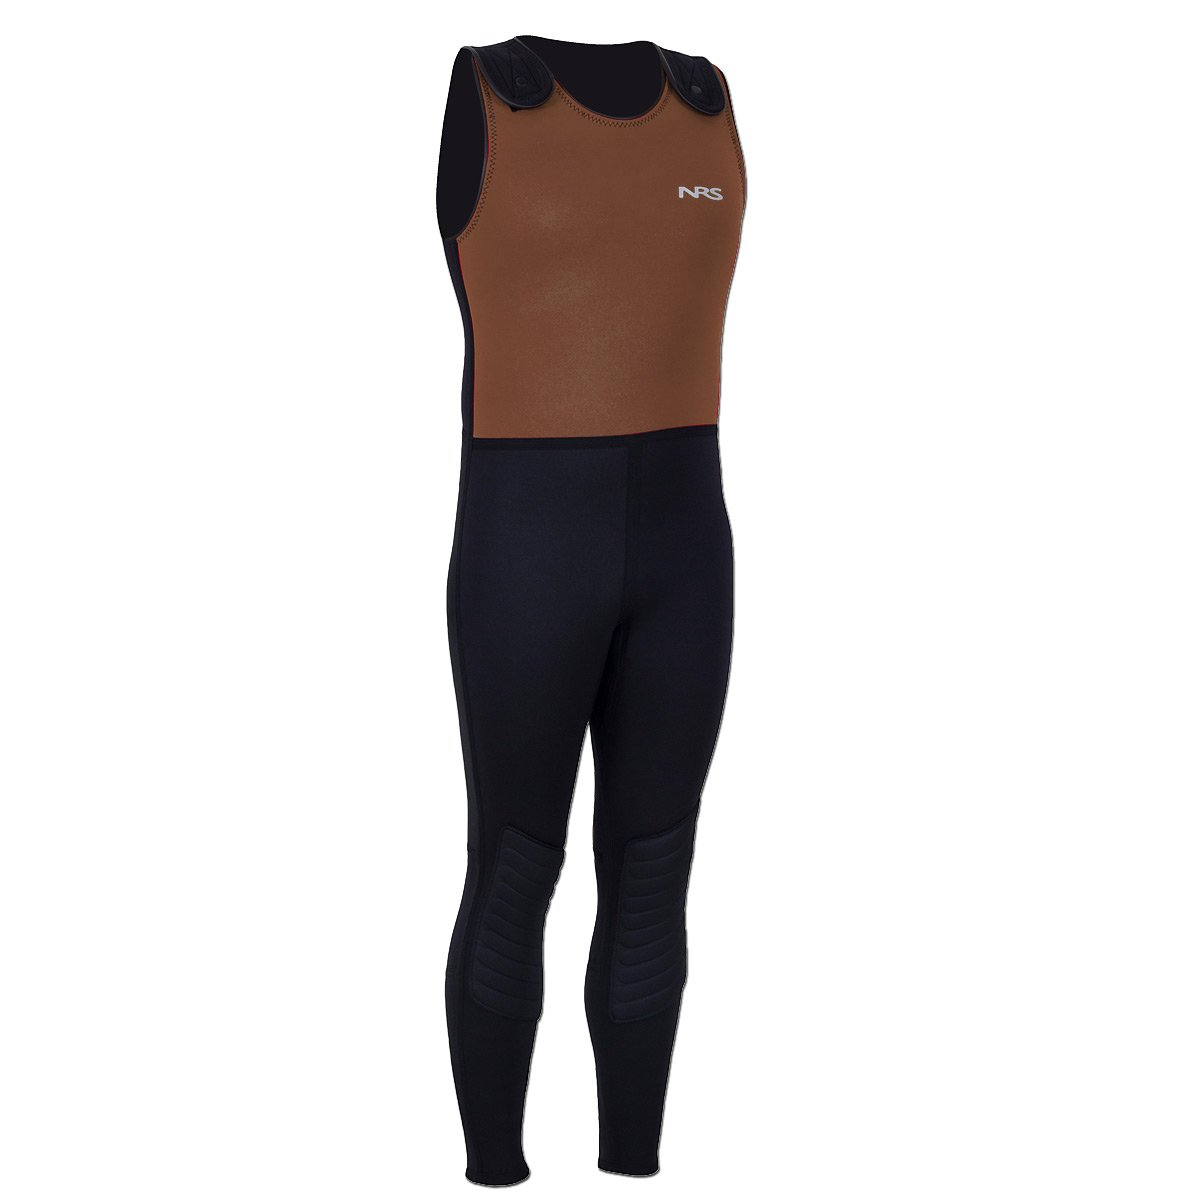 NRS Farmer Bill Neoprene Wetsuit-Black/Brown-4XL by NRS